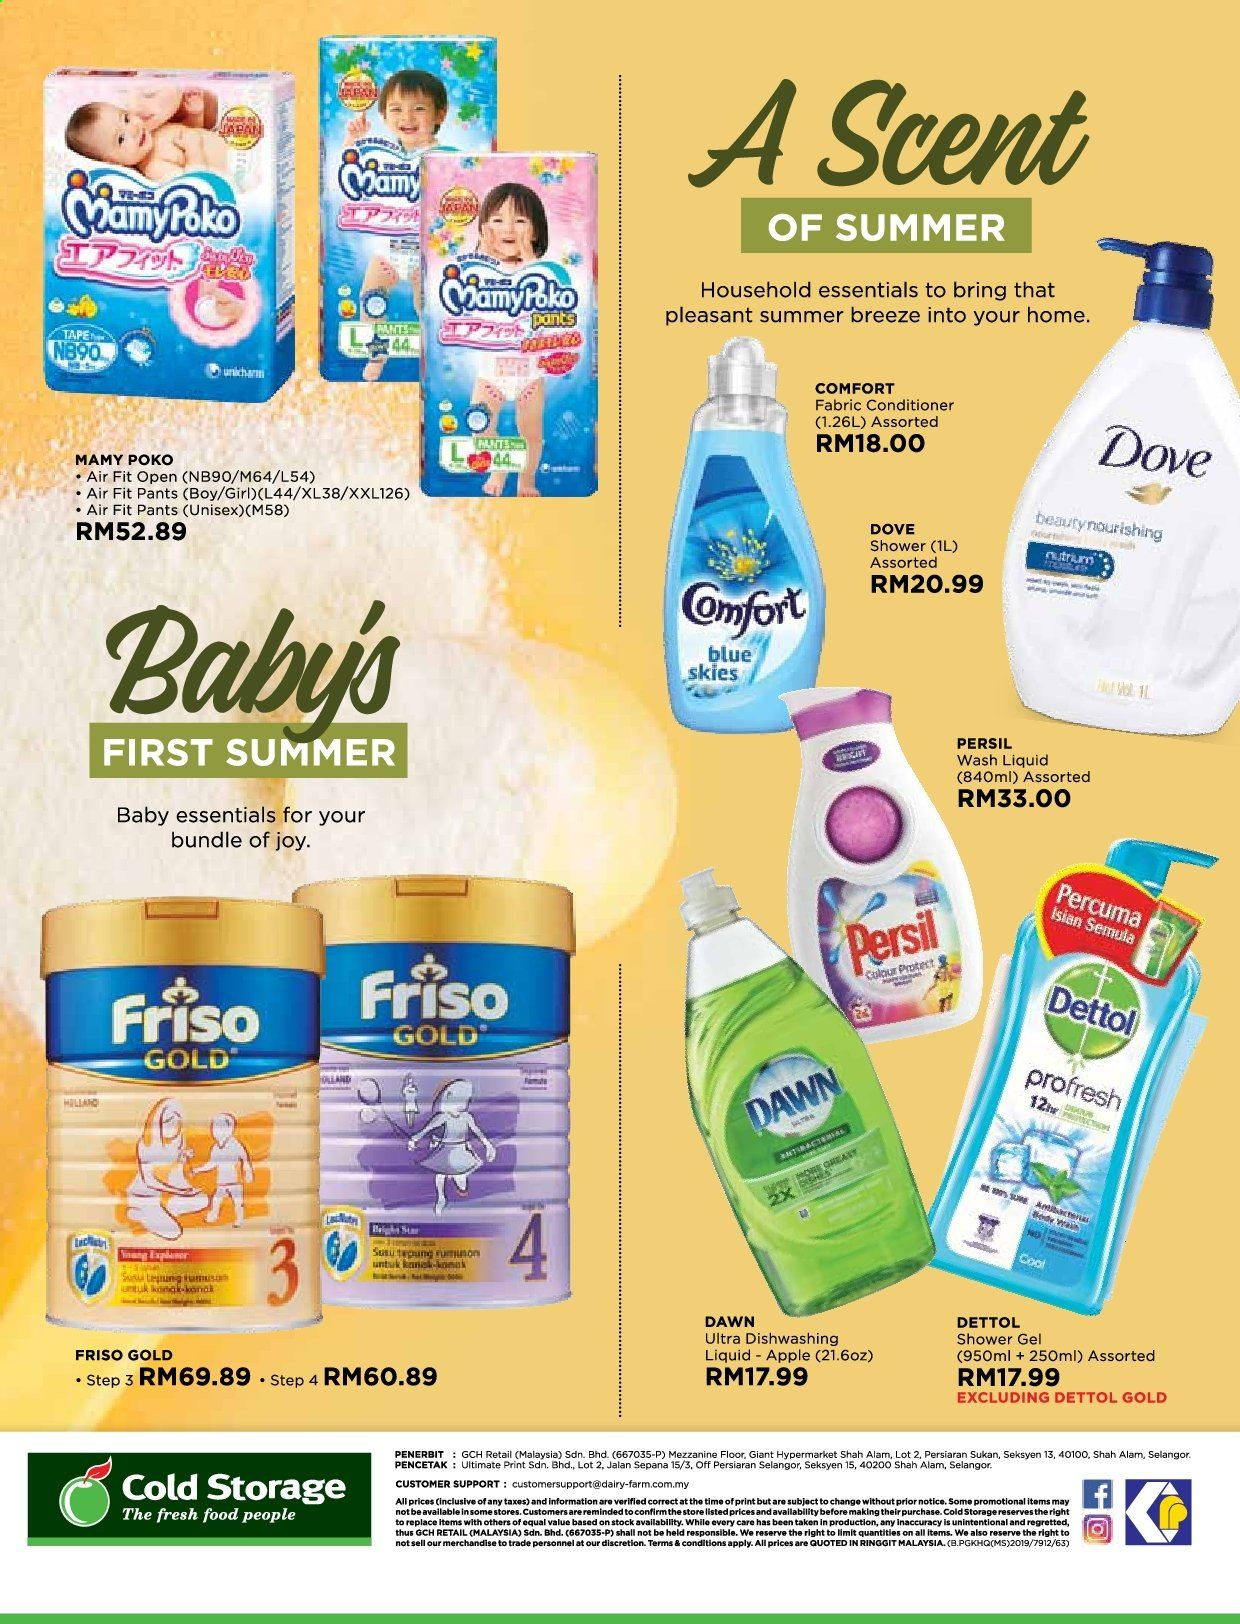 Iklan Cold Storage - 15.07.2019 - 11.08.2019 - Produk jualan - apple, bundle, conditioner, dettol, dove, pants, persil, shower gel, storage, susu, tape. Halaman 12.